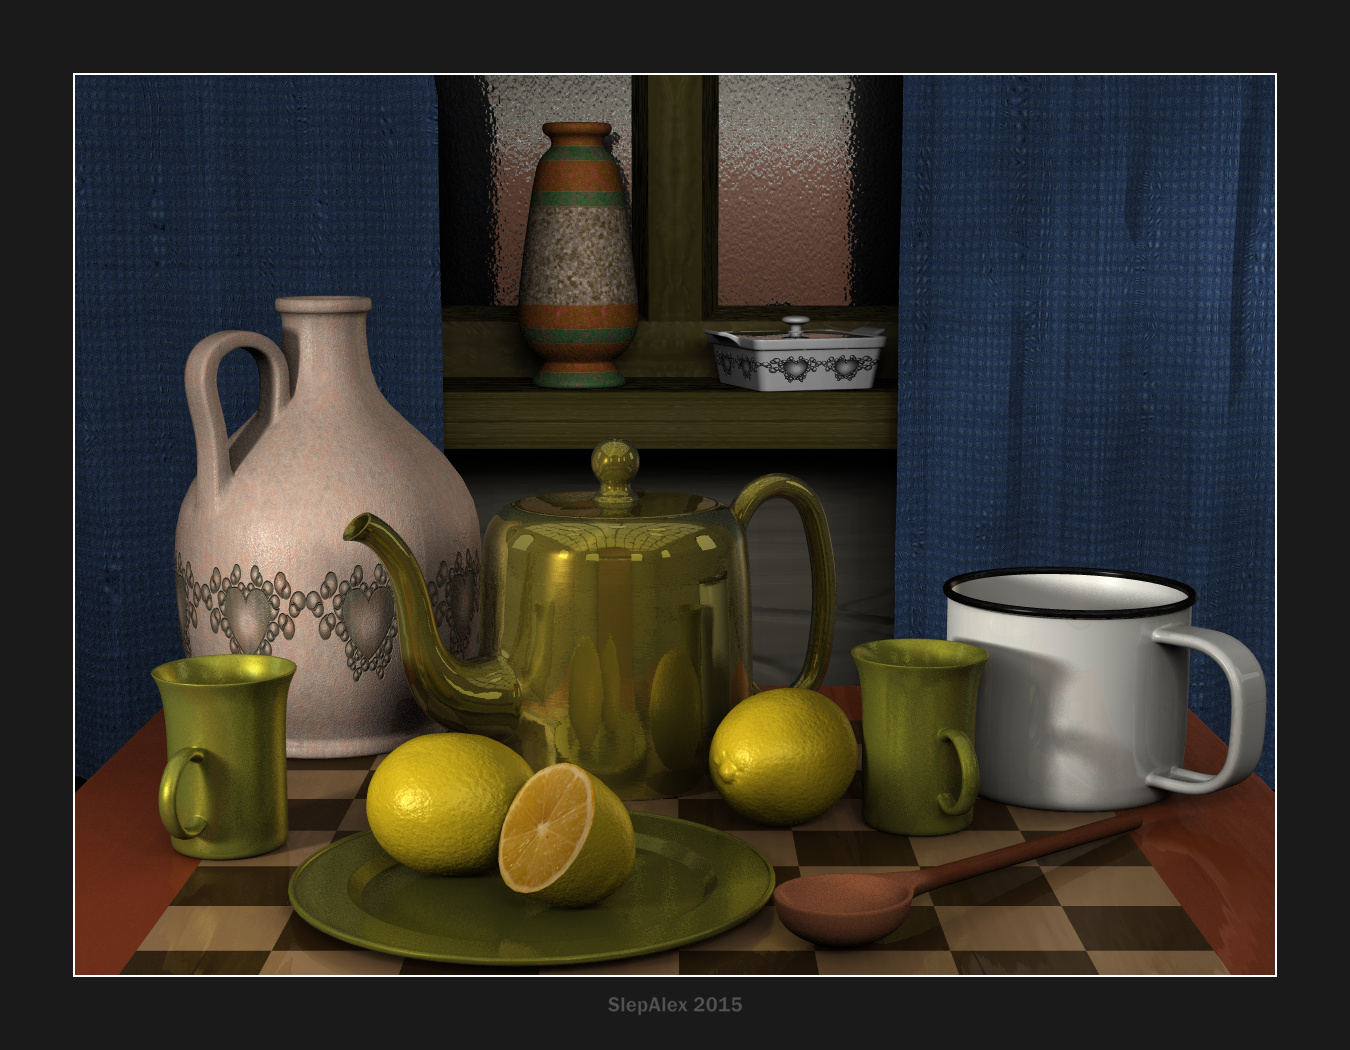 Teapot and lemons